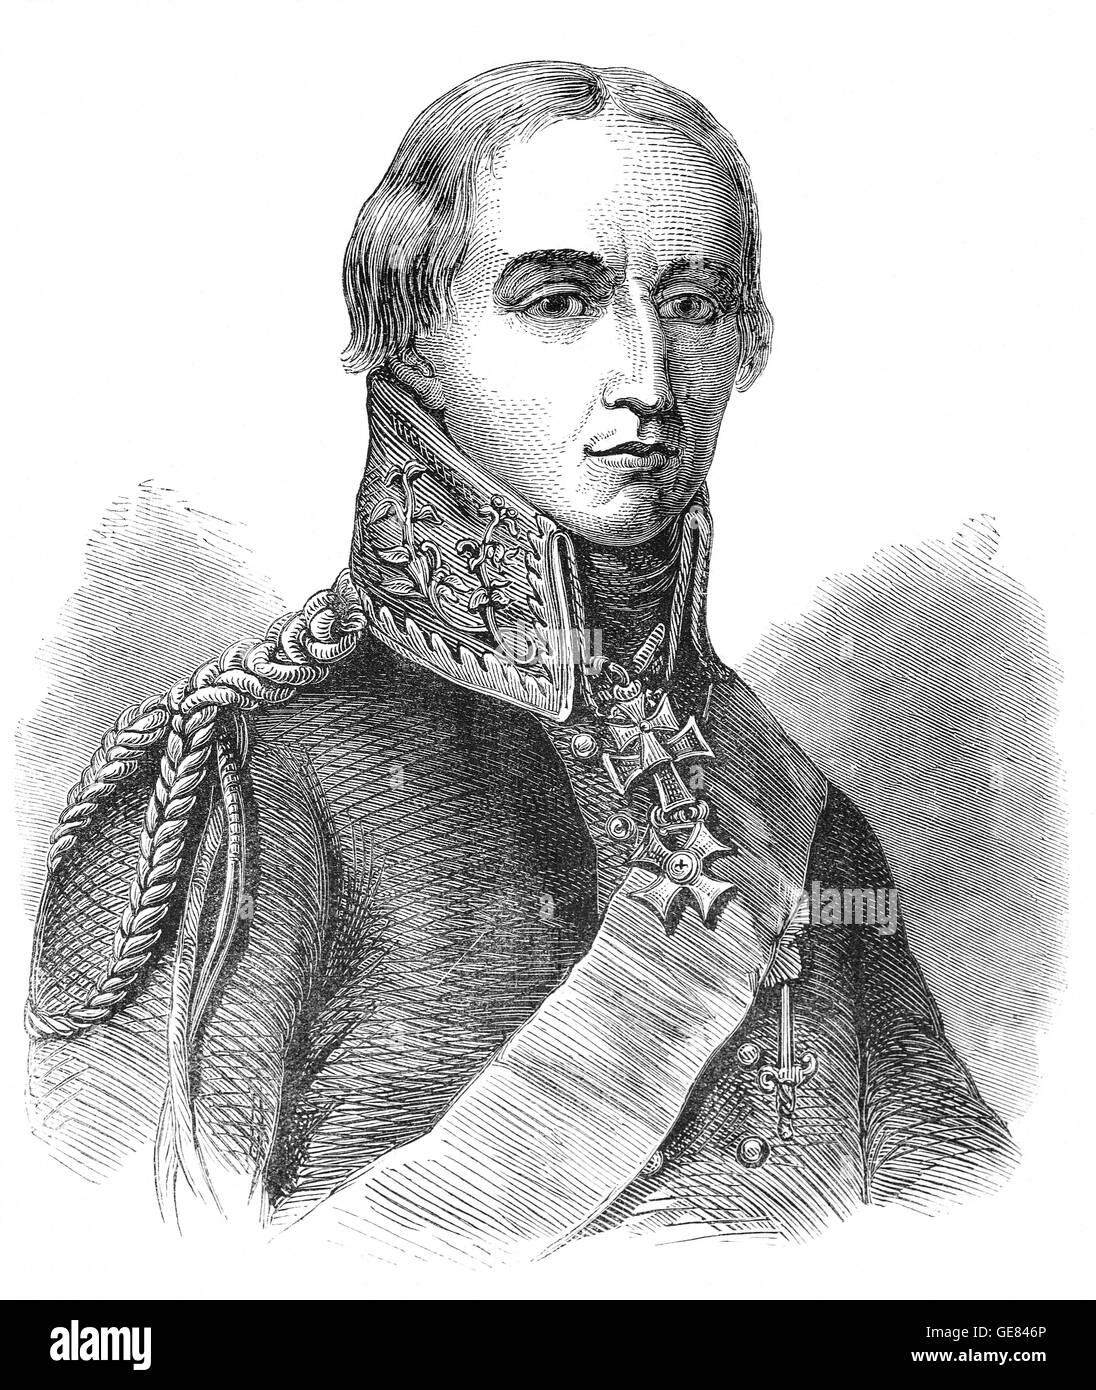 Friedrich Wilhelm Freiherr, or Marshal Bulow (1755 – 1816) was a Prussian general who supported the British during - Stock Image